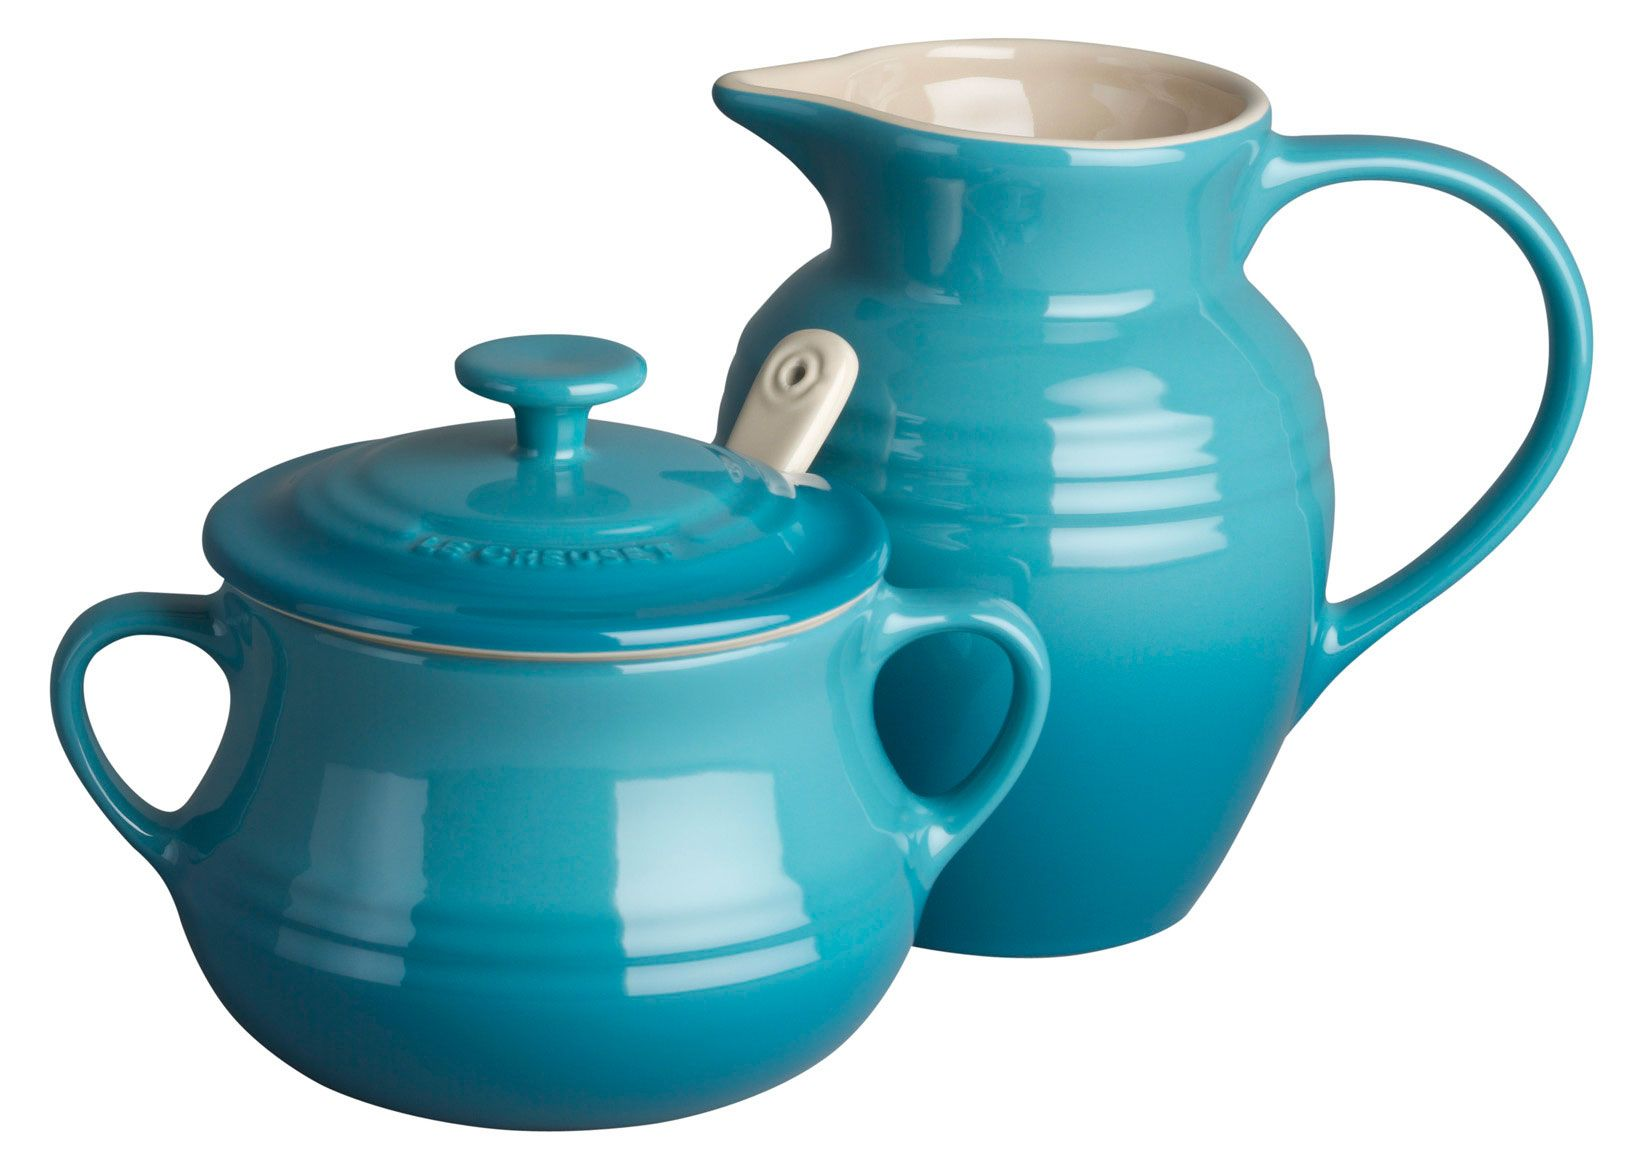 Le Creuset Stoneware Cream and Sugar Set in Teal - almost impossible ...